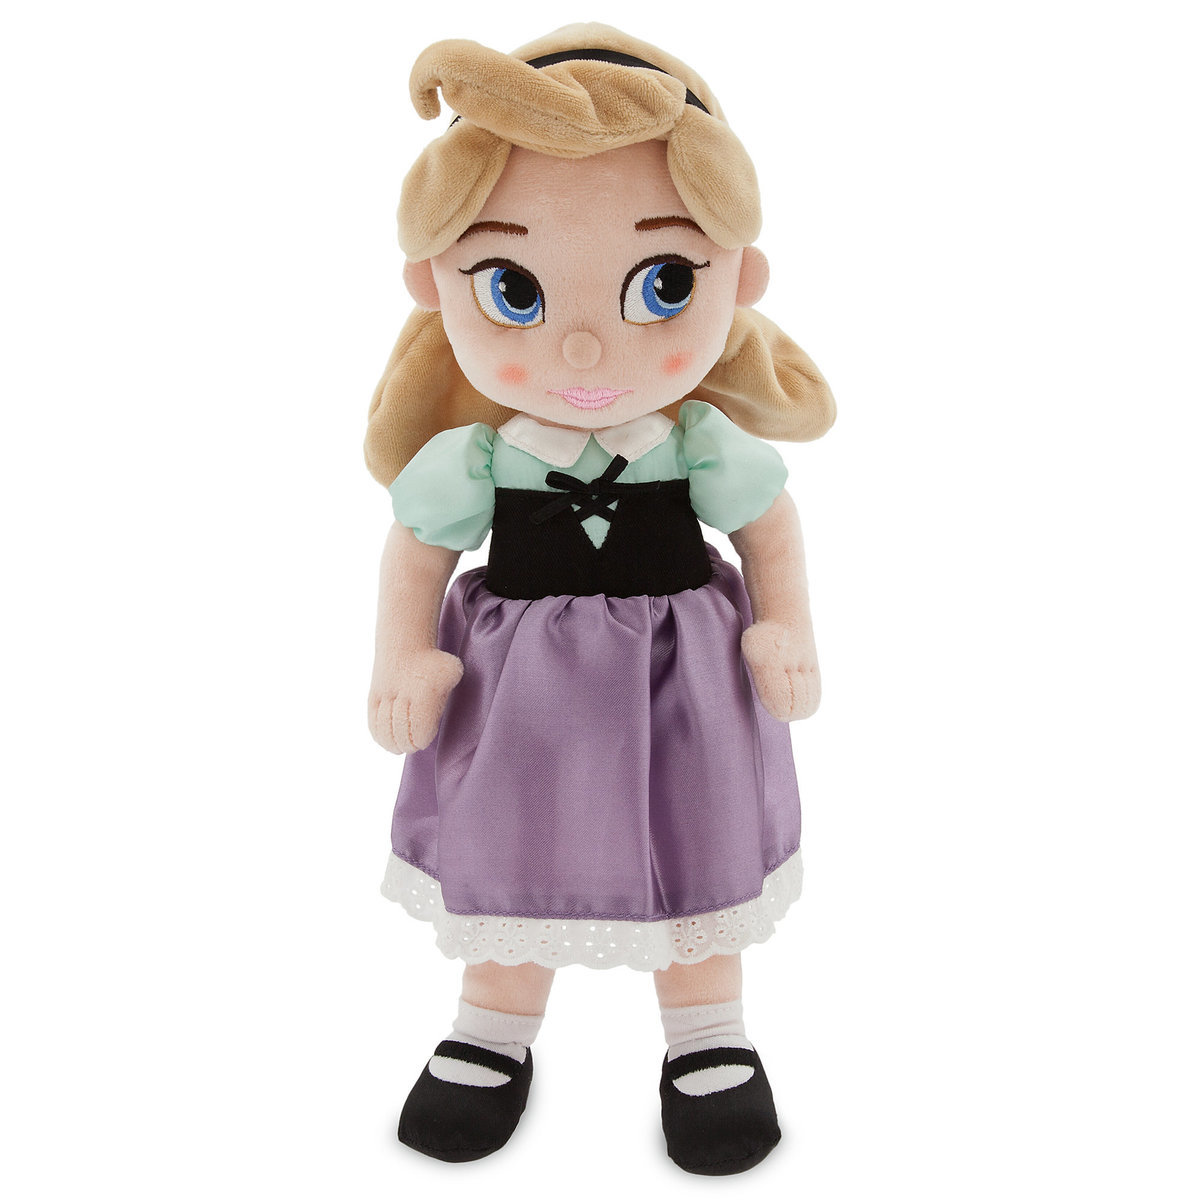 H4153 ตุ๊กตา Disney Animators  Collection Aurora Plush Doll - Small ... fea512c16